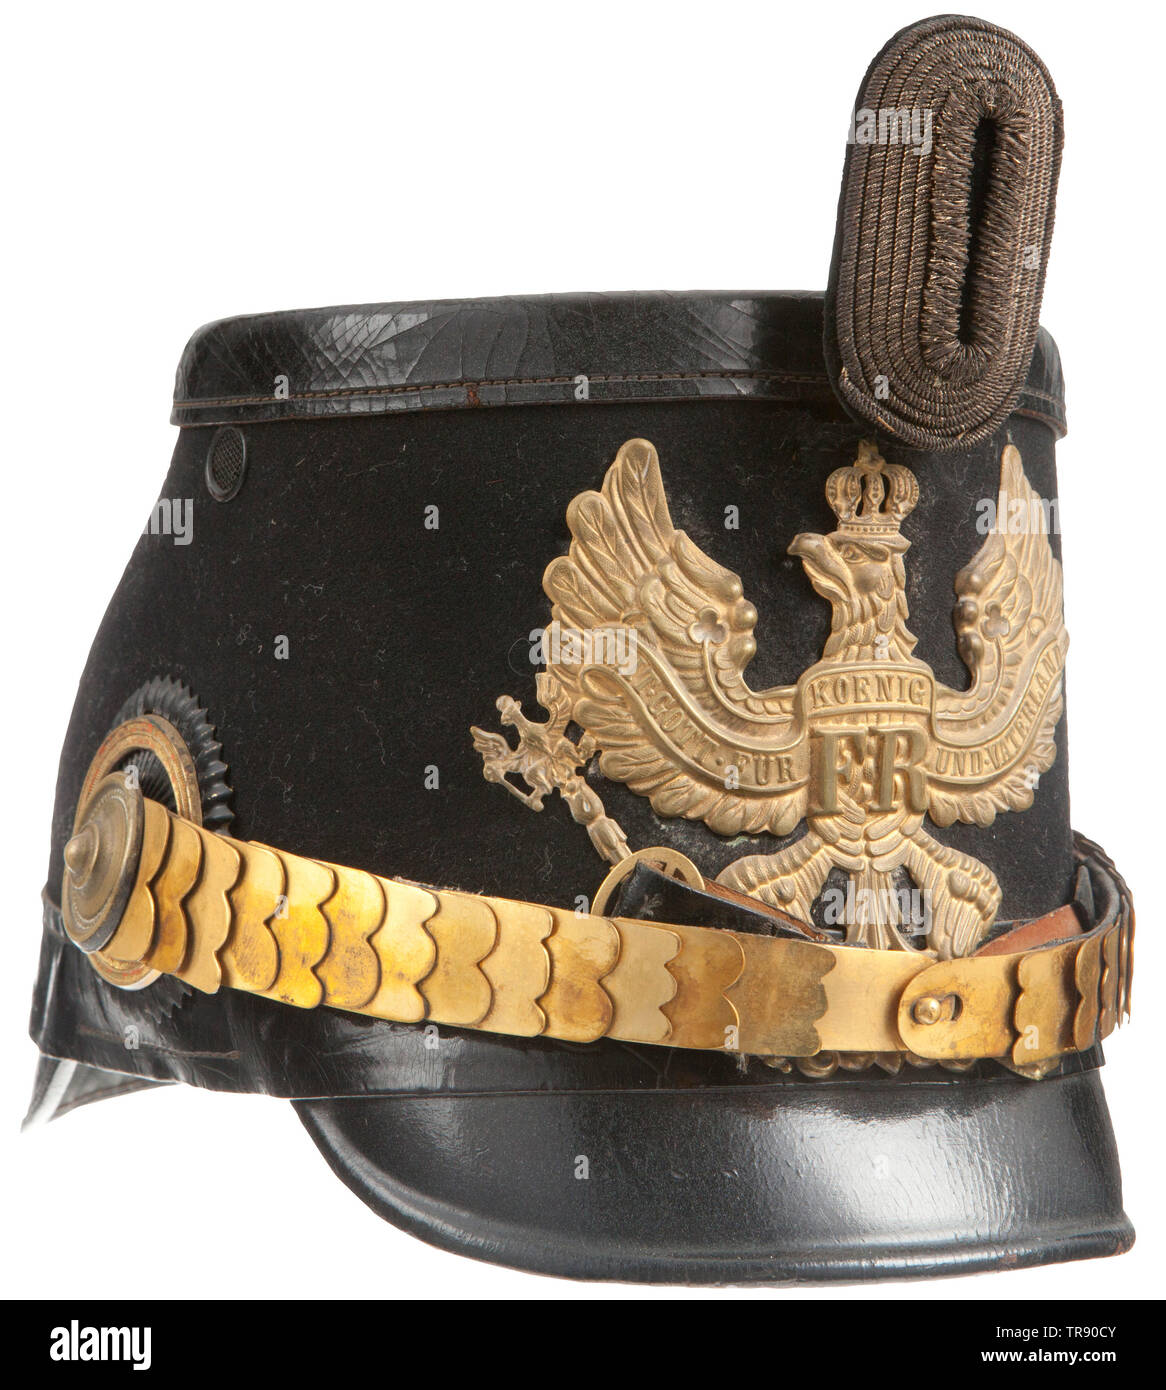 IMPERIAL GERMANY UNTIL 1914, An imperial German Prussian Jäger officer shako Black leather body with front and rear visors, black felt cloth covering around mid-section of helmet and leather crazing on body top, gilt Prussian officer front plate attached by two brad splintas, silver bullion and black velvet field badge. Flat, gilt scale chinstraps attached by officer gilt rosette side posts, officer black and gold cockade, green silk lining with tan leather sweatband. CNN382, Additional-Rights-Clearance-Info-Not-Available - Stock Image